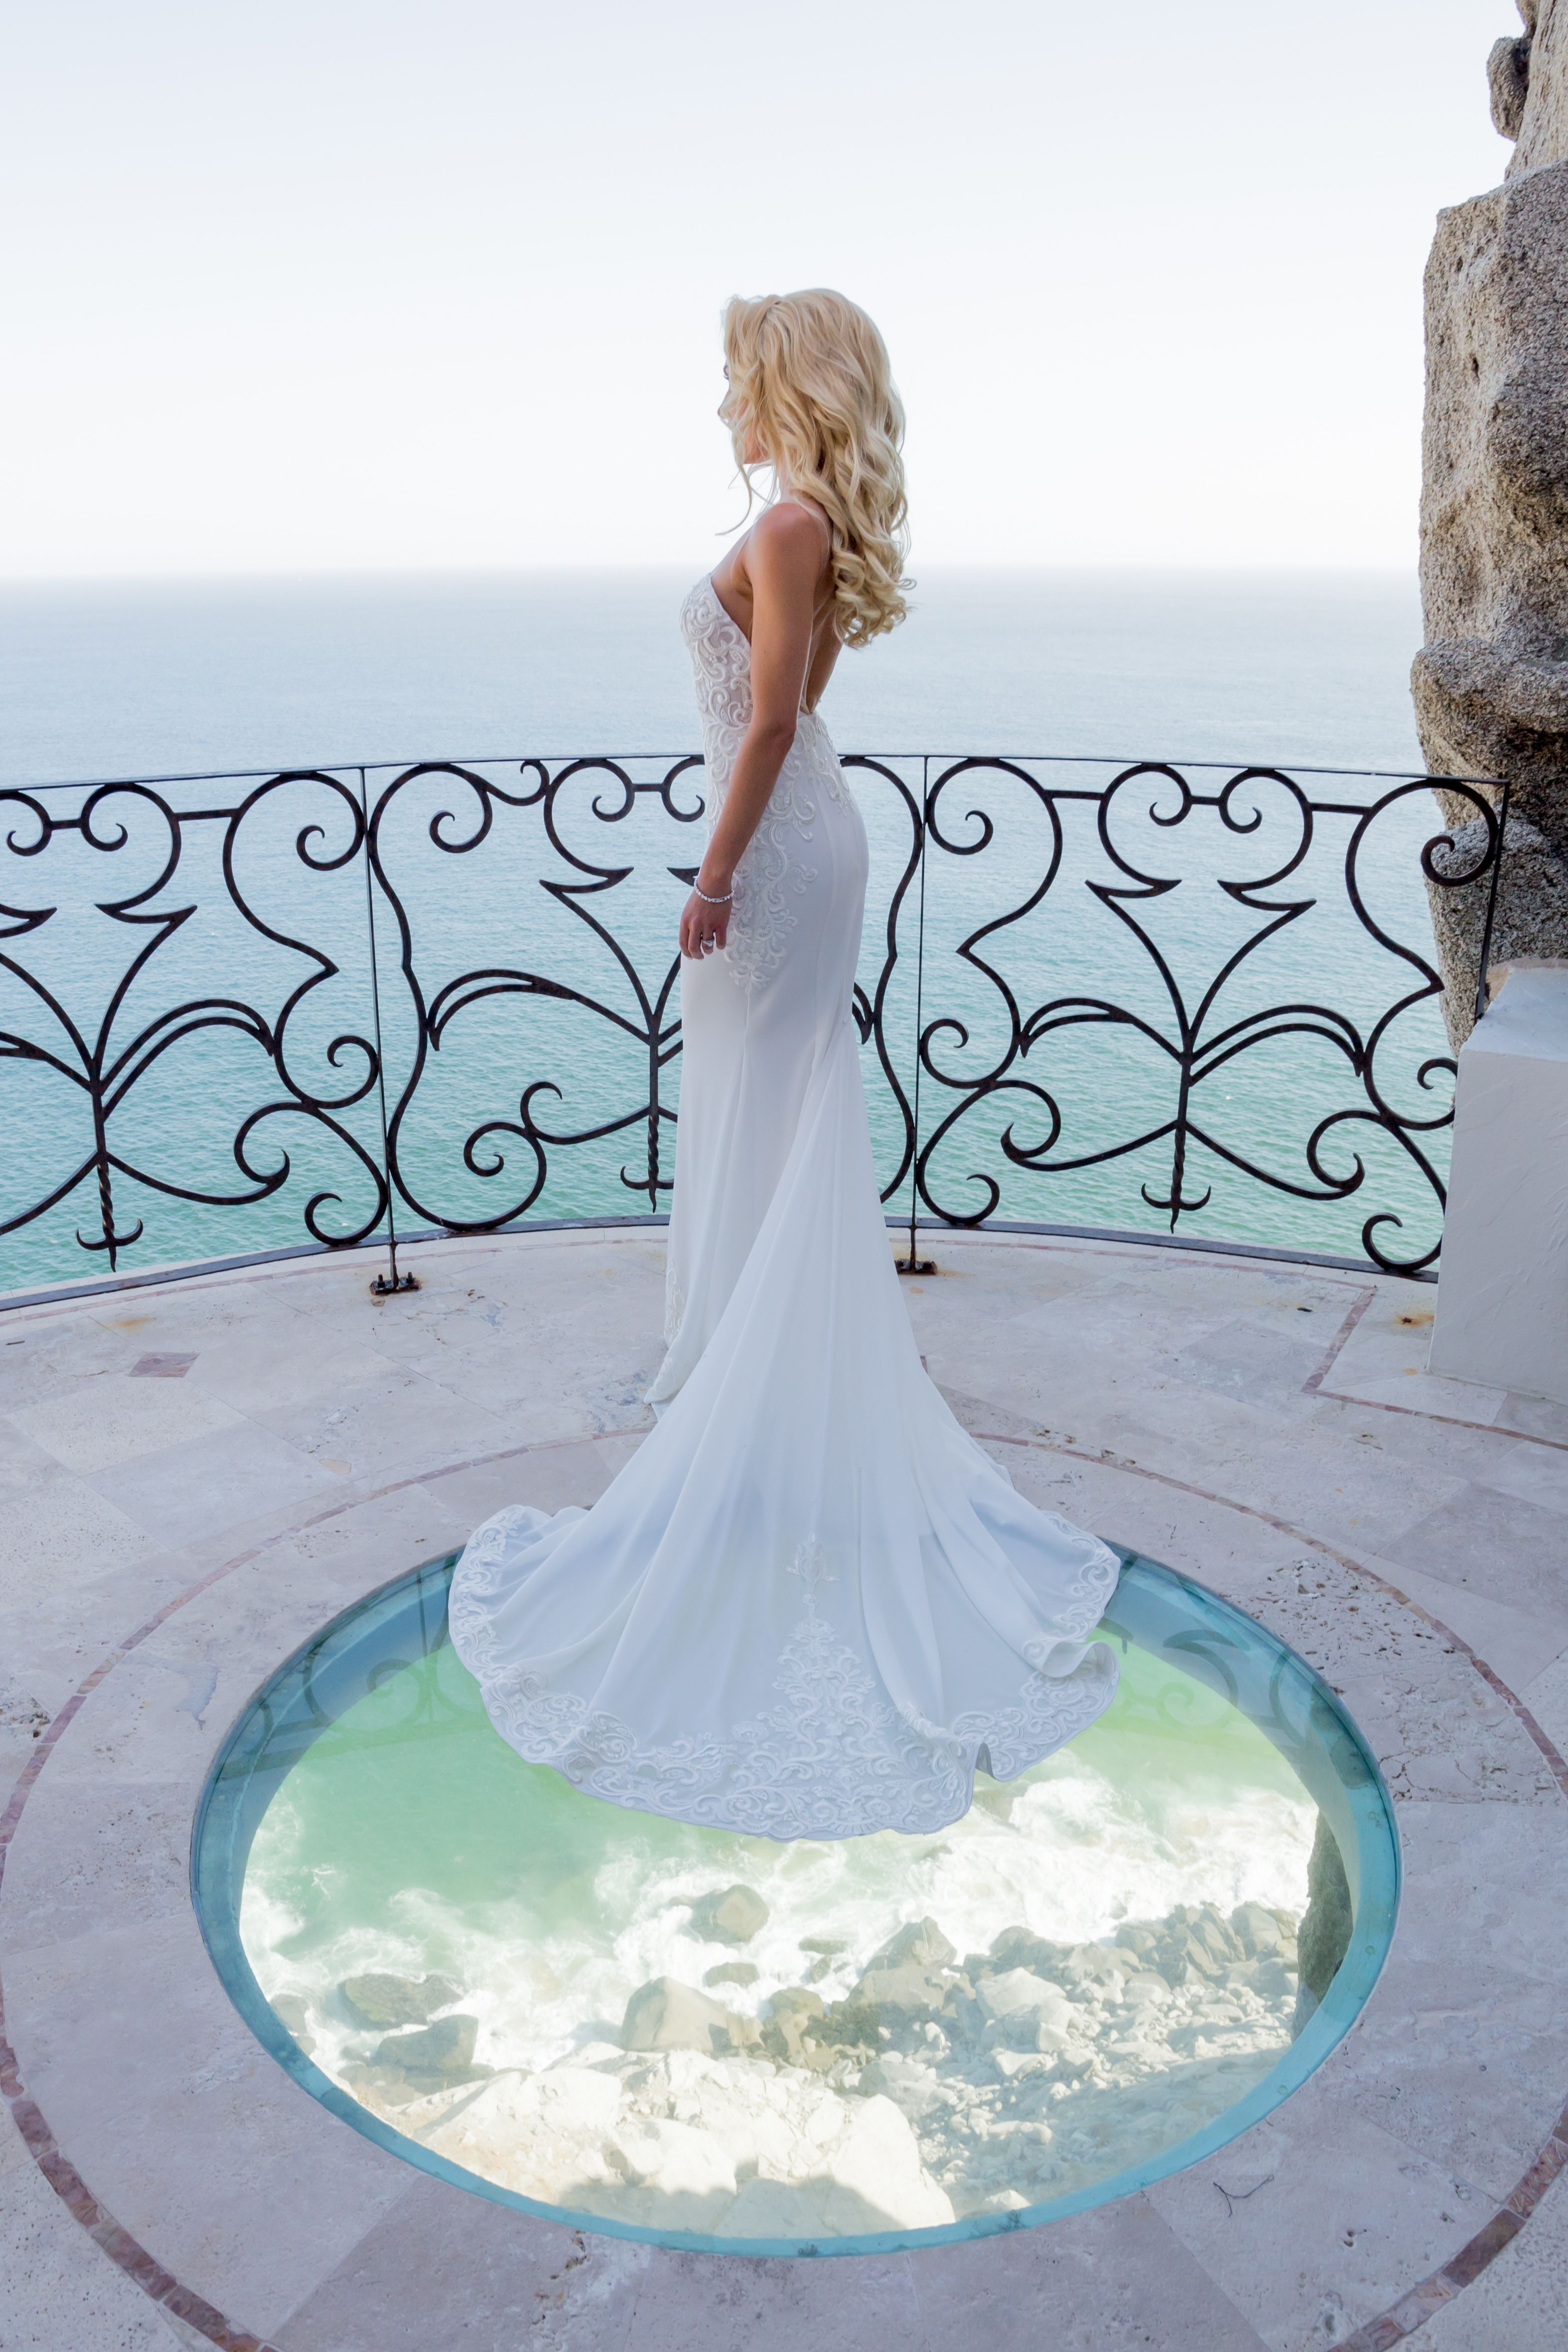 Bride having her photo session after wedding ceremony at Villa la Roca Pedregal Los Cabos